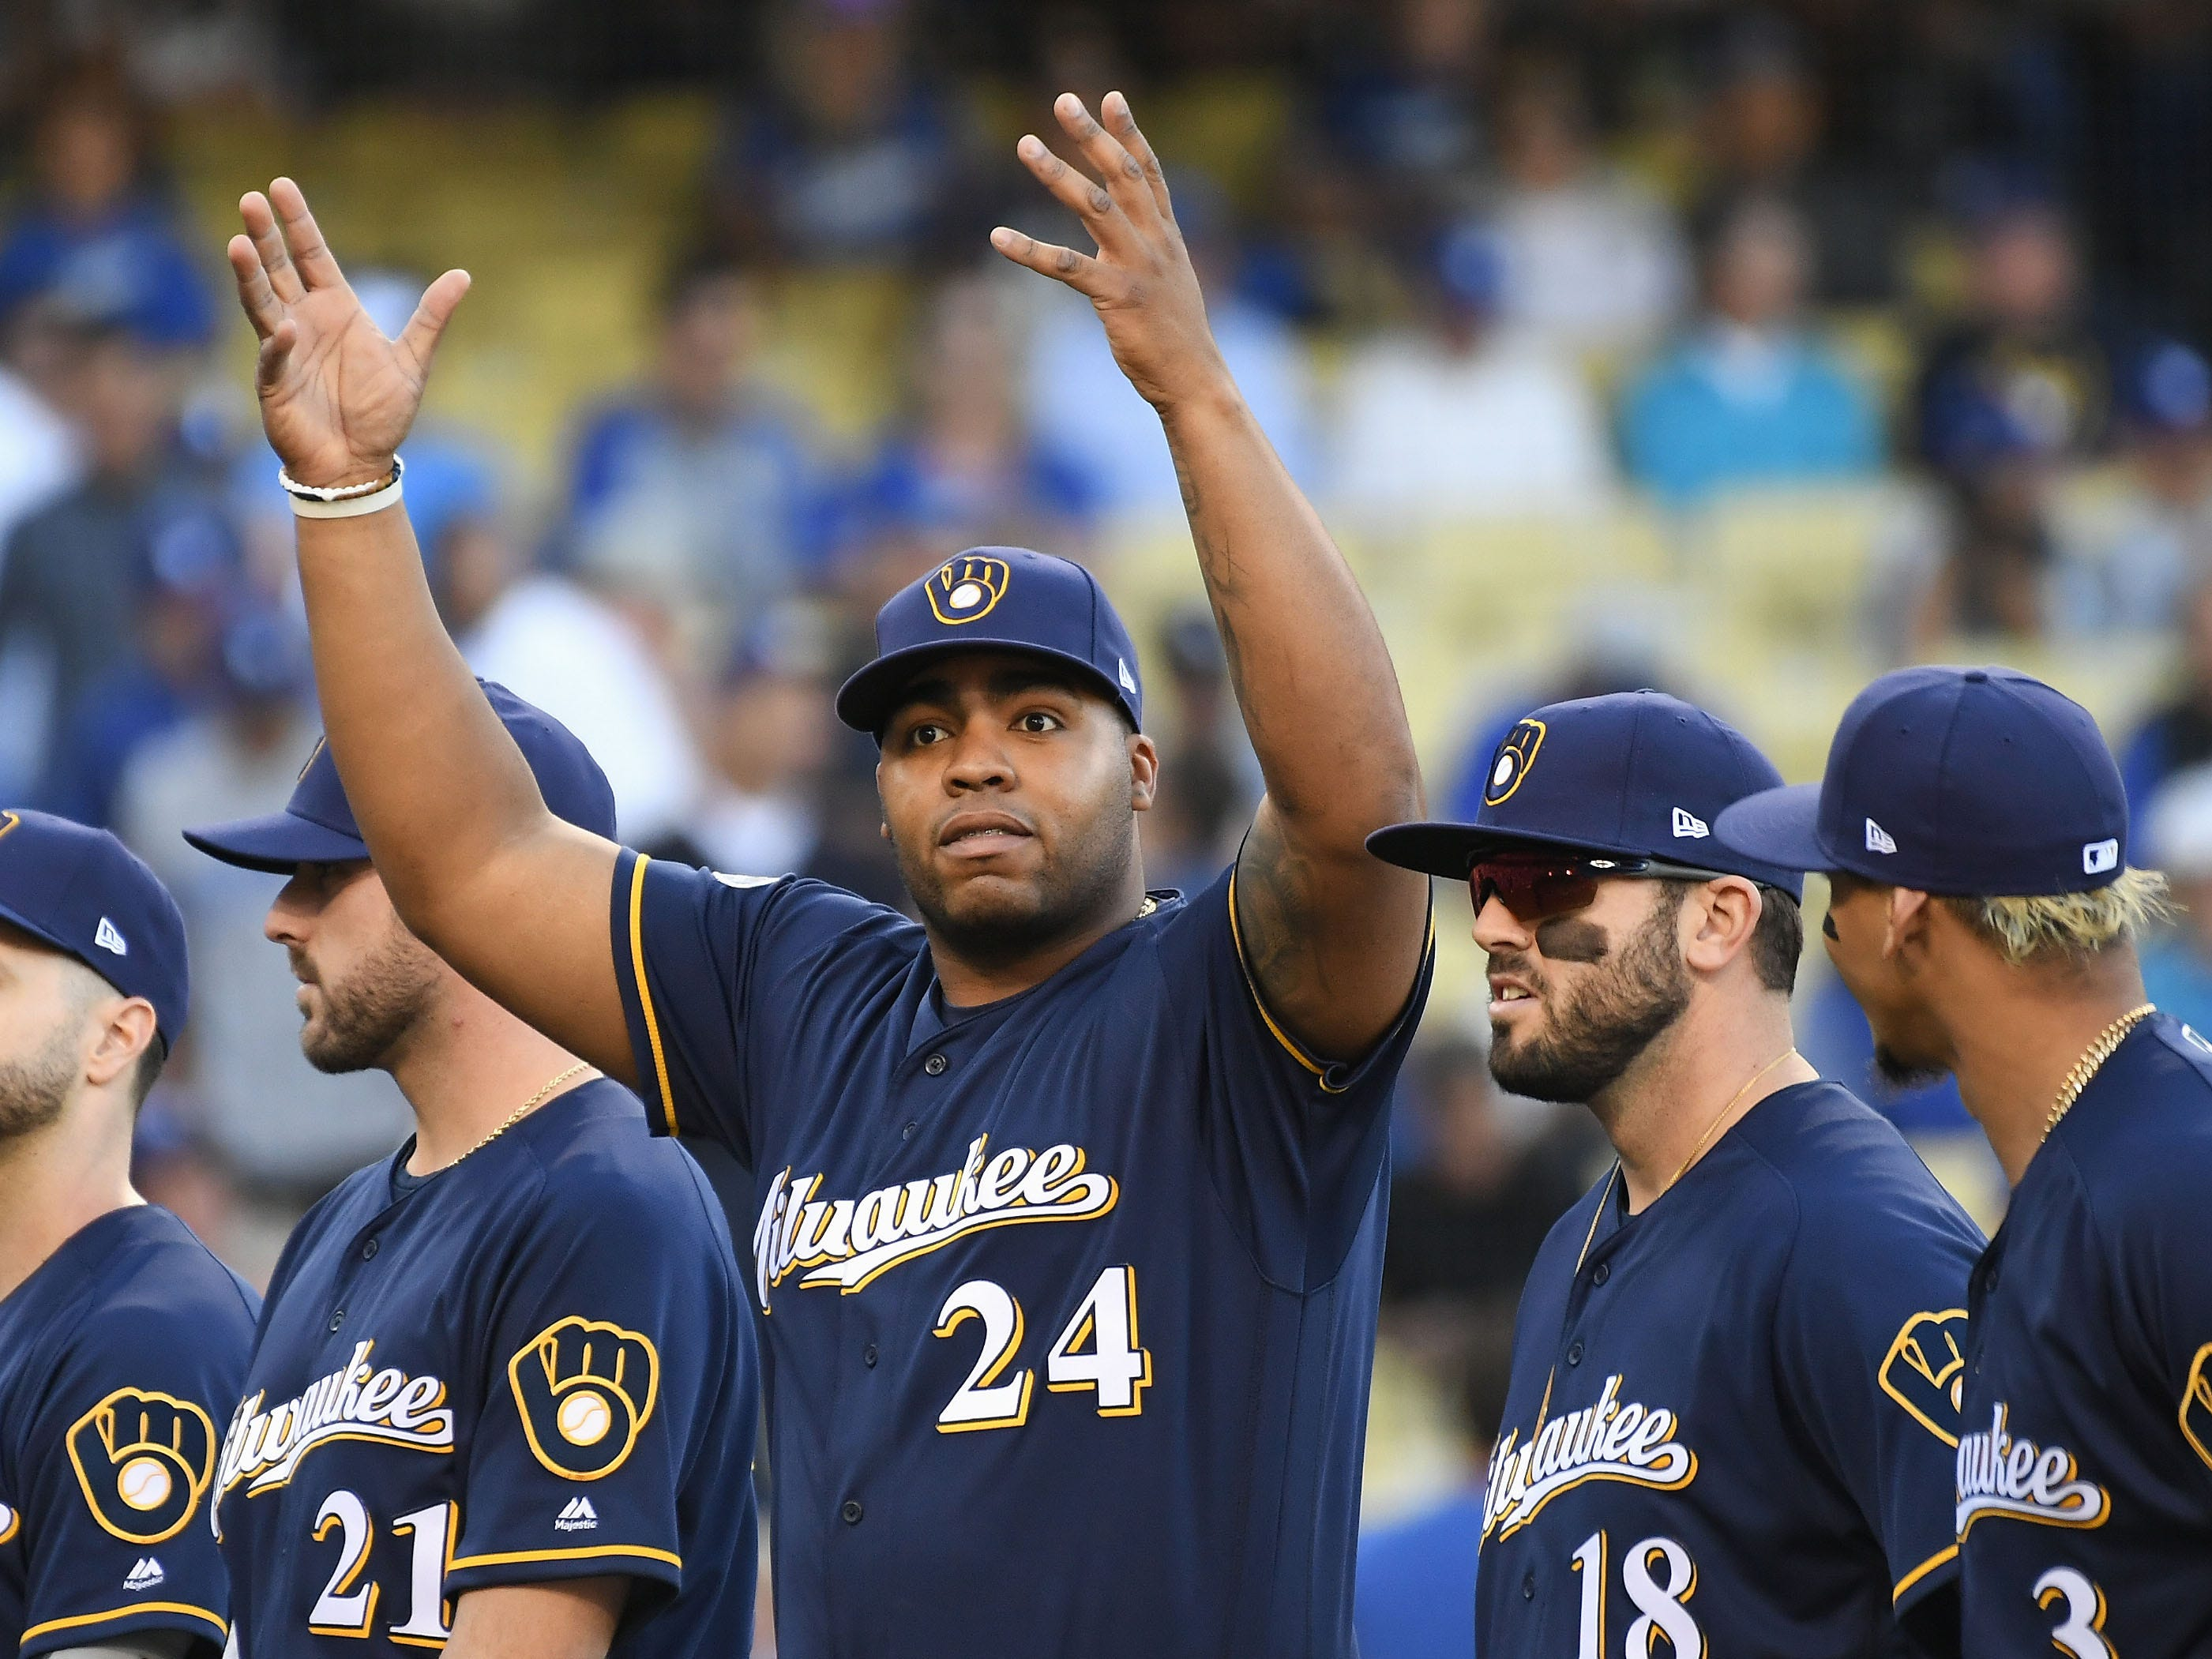 NLCS Game 3: Brewers first baseman Jesus Aguilar reacts to the crowd during pregame introductions.